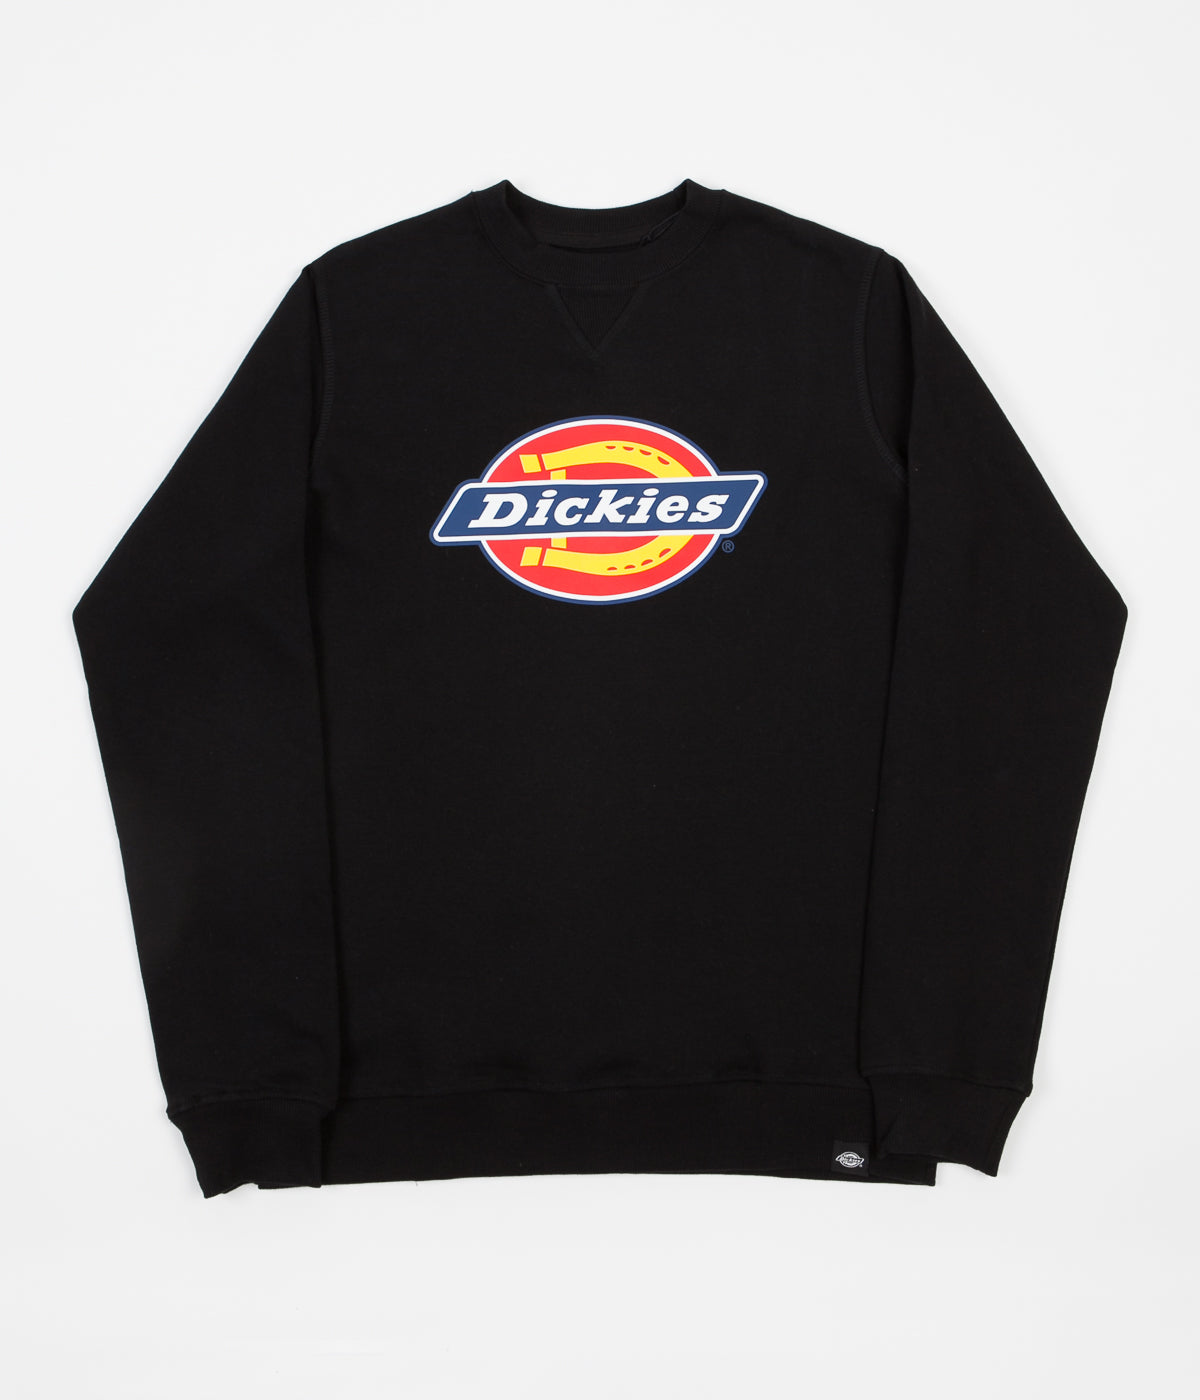 Dickies Harrison Crewneck Sweatshirt - Black